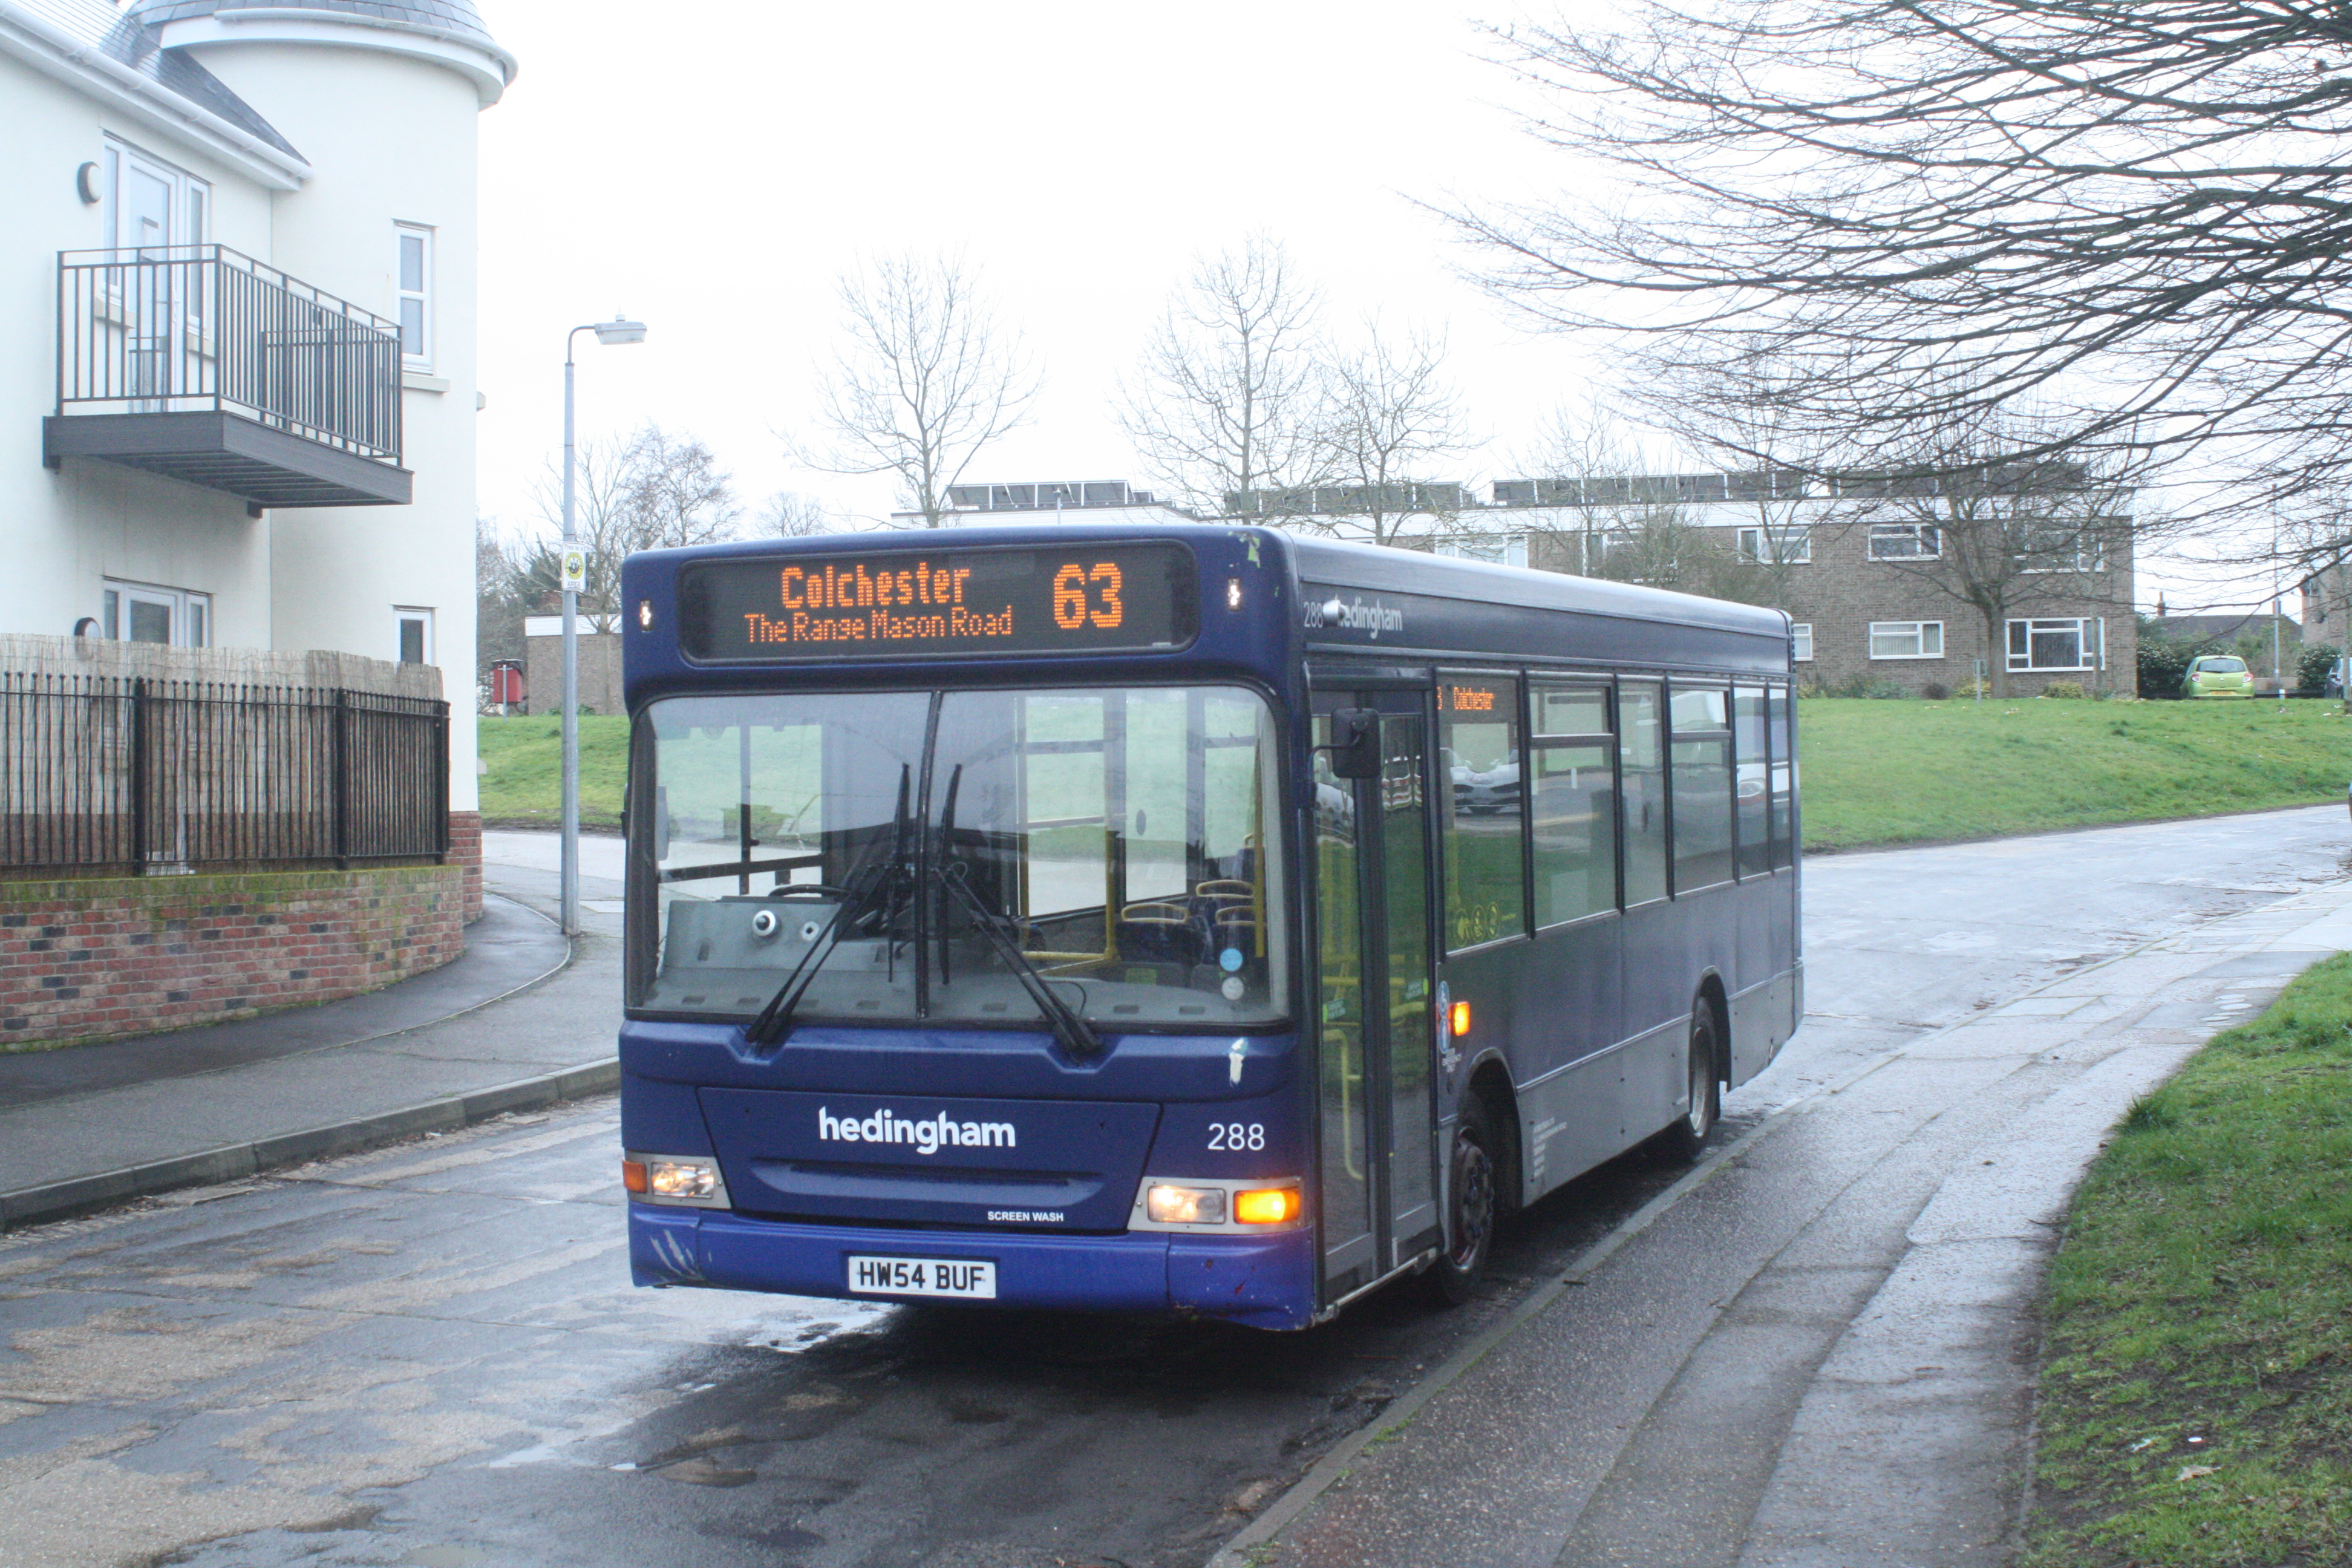 HW54BUF 288 HO 63 DIVERSION KING GEORGE RD CR) 19-2-20